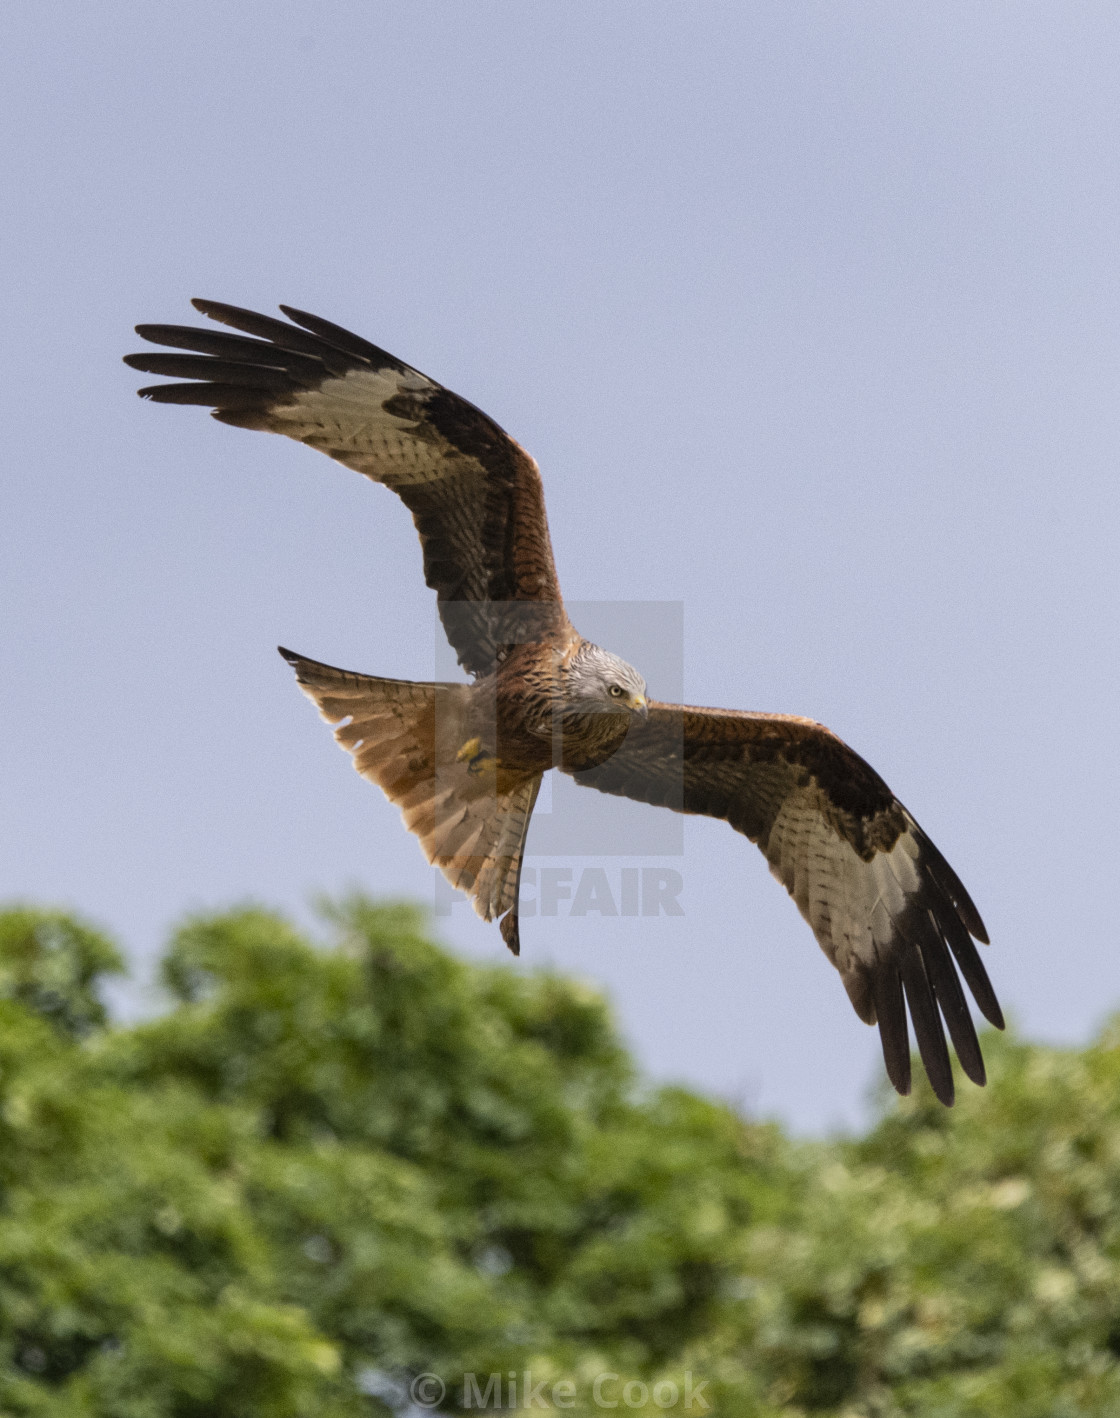 """A Red Kite"" stock image"